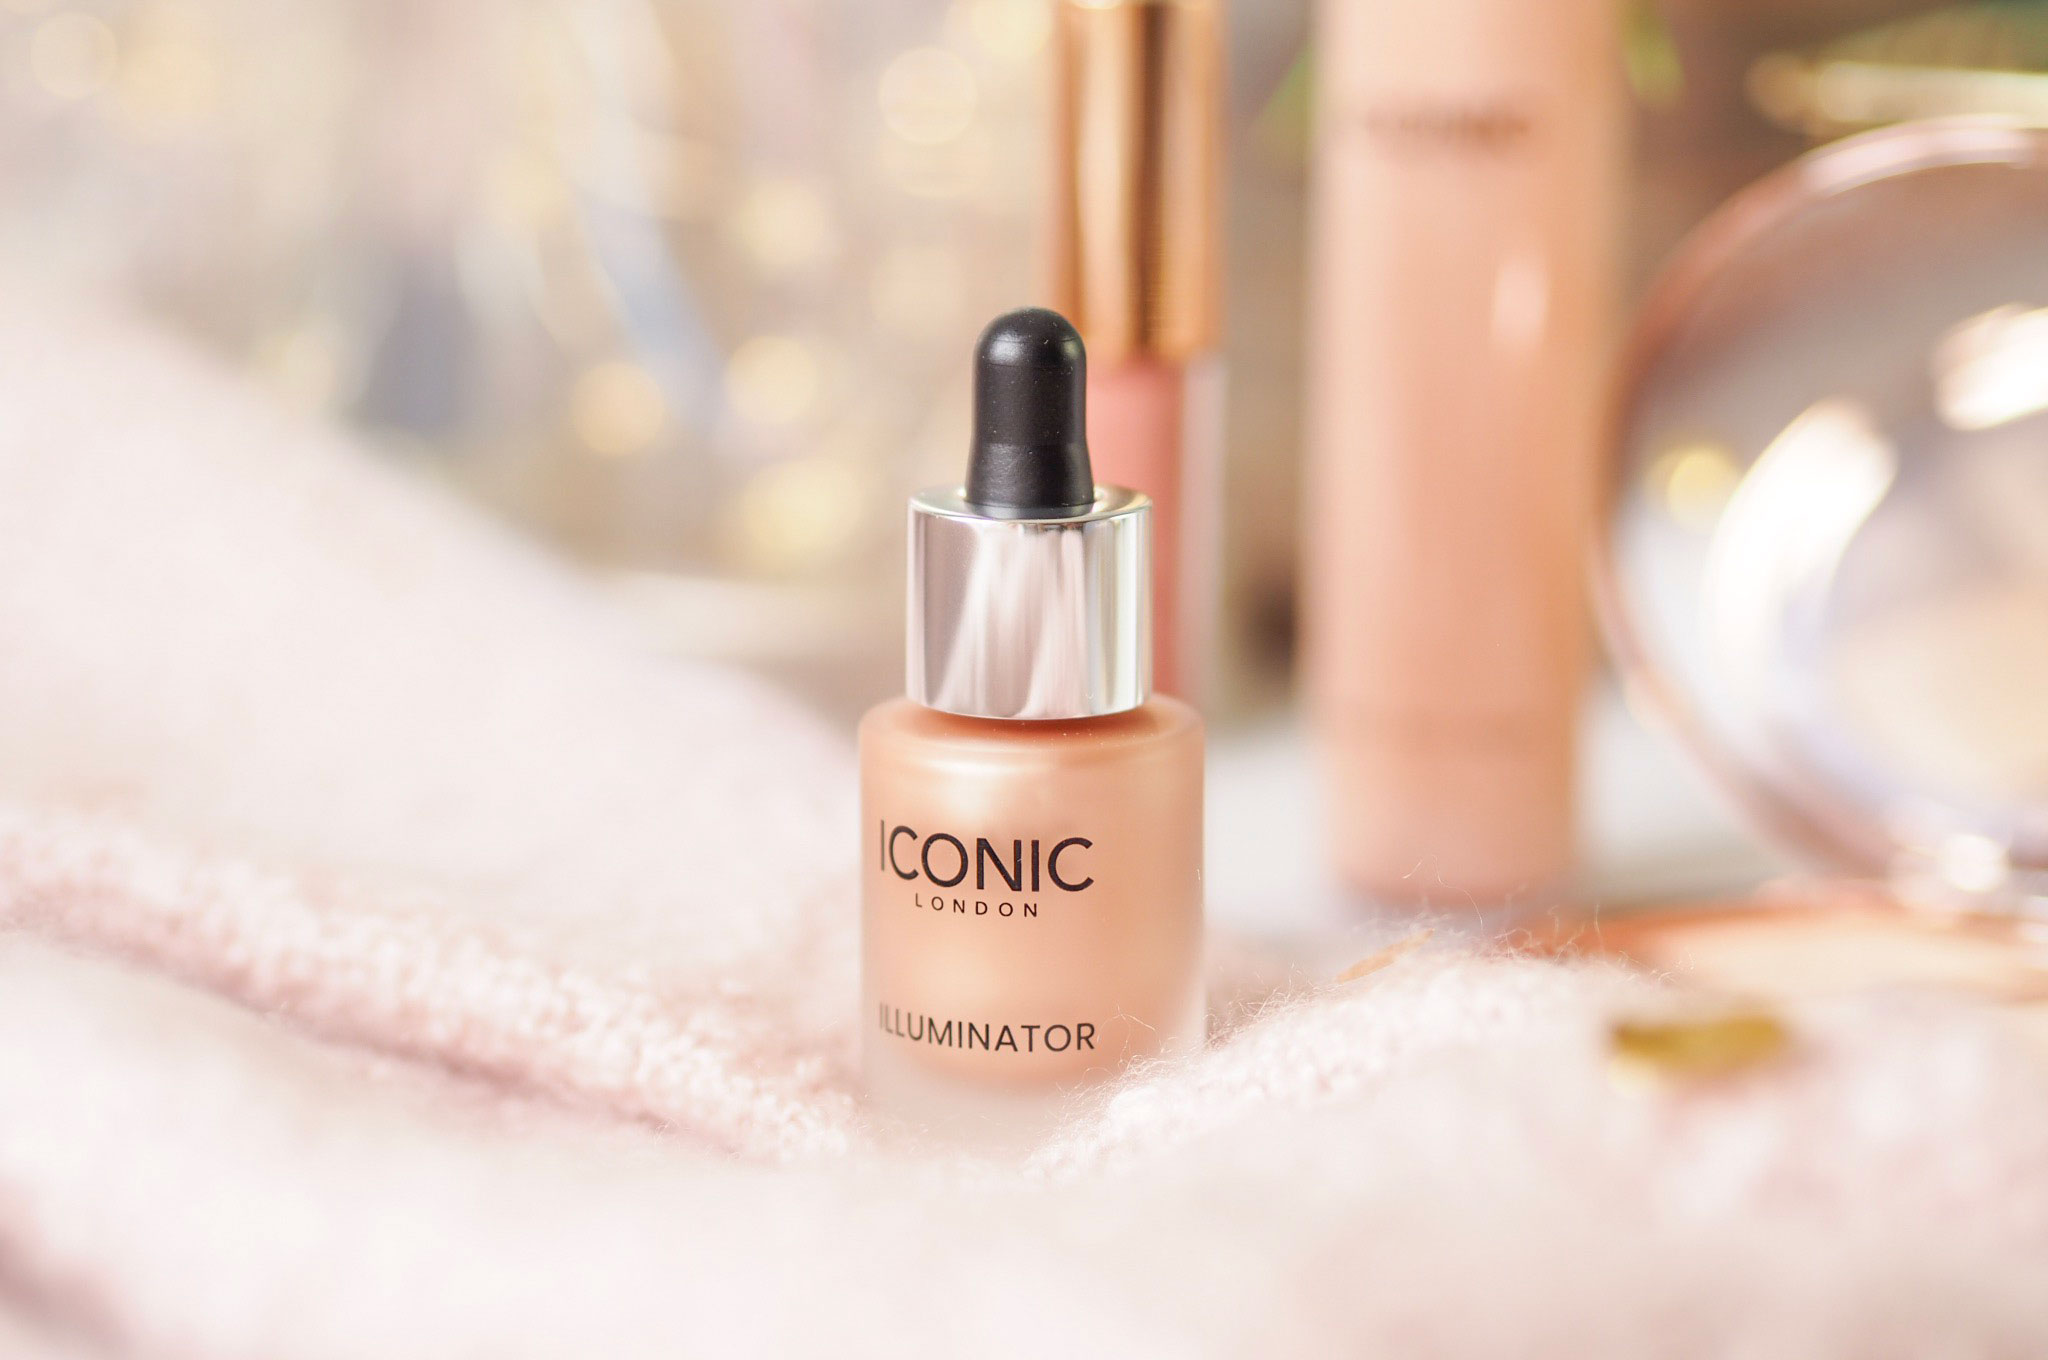 Iconic London Illuminator Drops Review